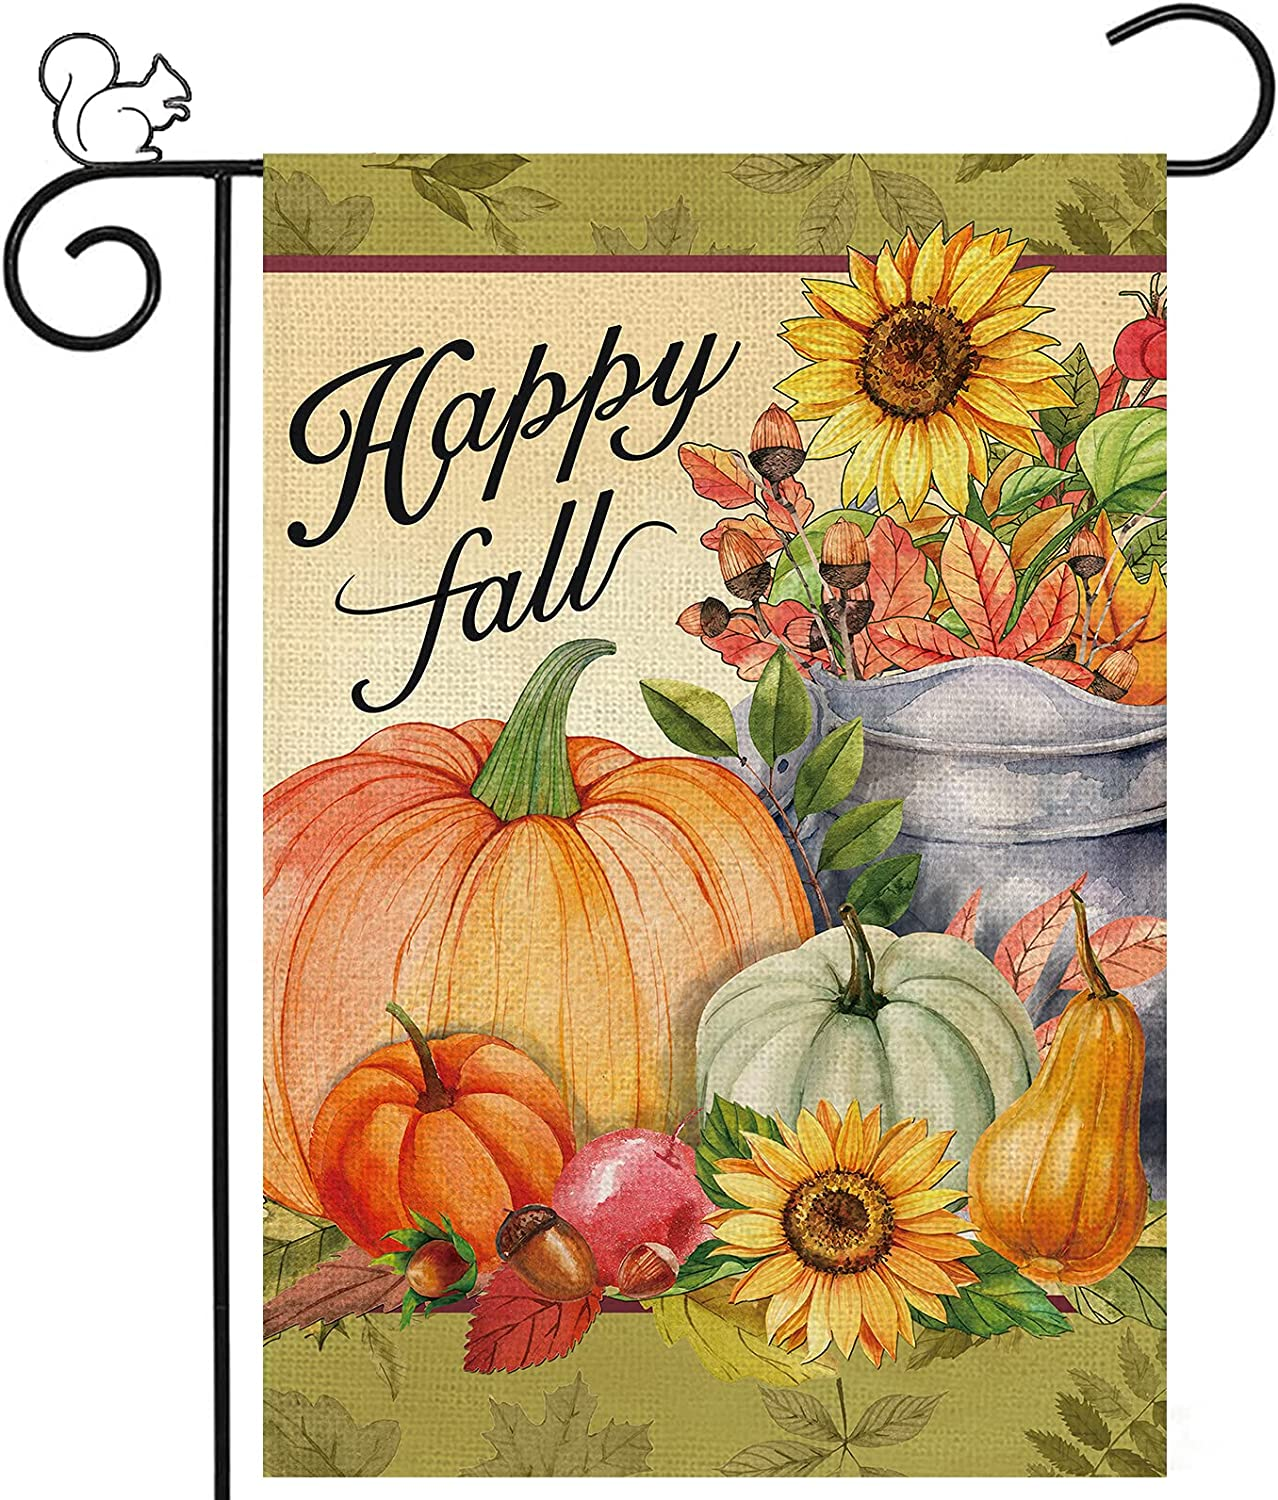 Happy Fall Garden Yard Flag Pumpkin New Shipping Free Our shop OFFers the best service House Sunflowers Flags 12 x